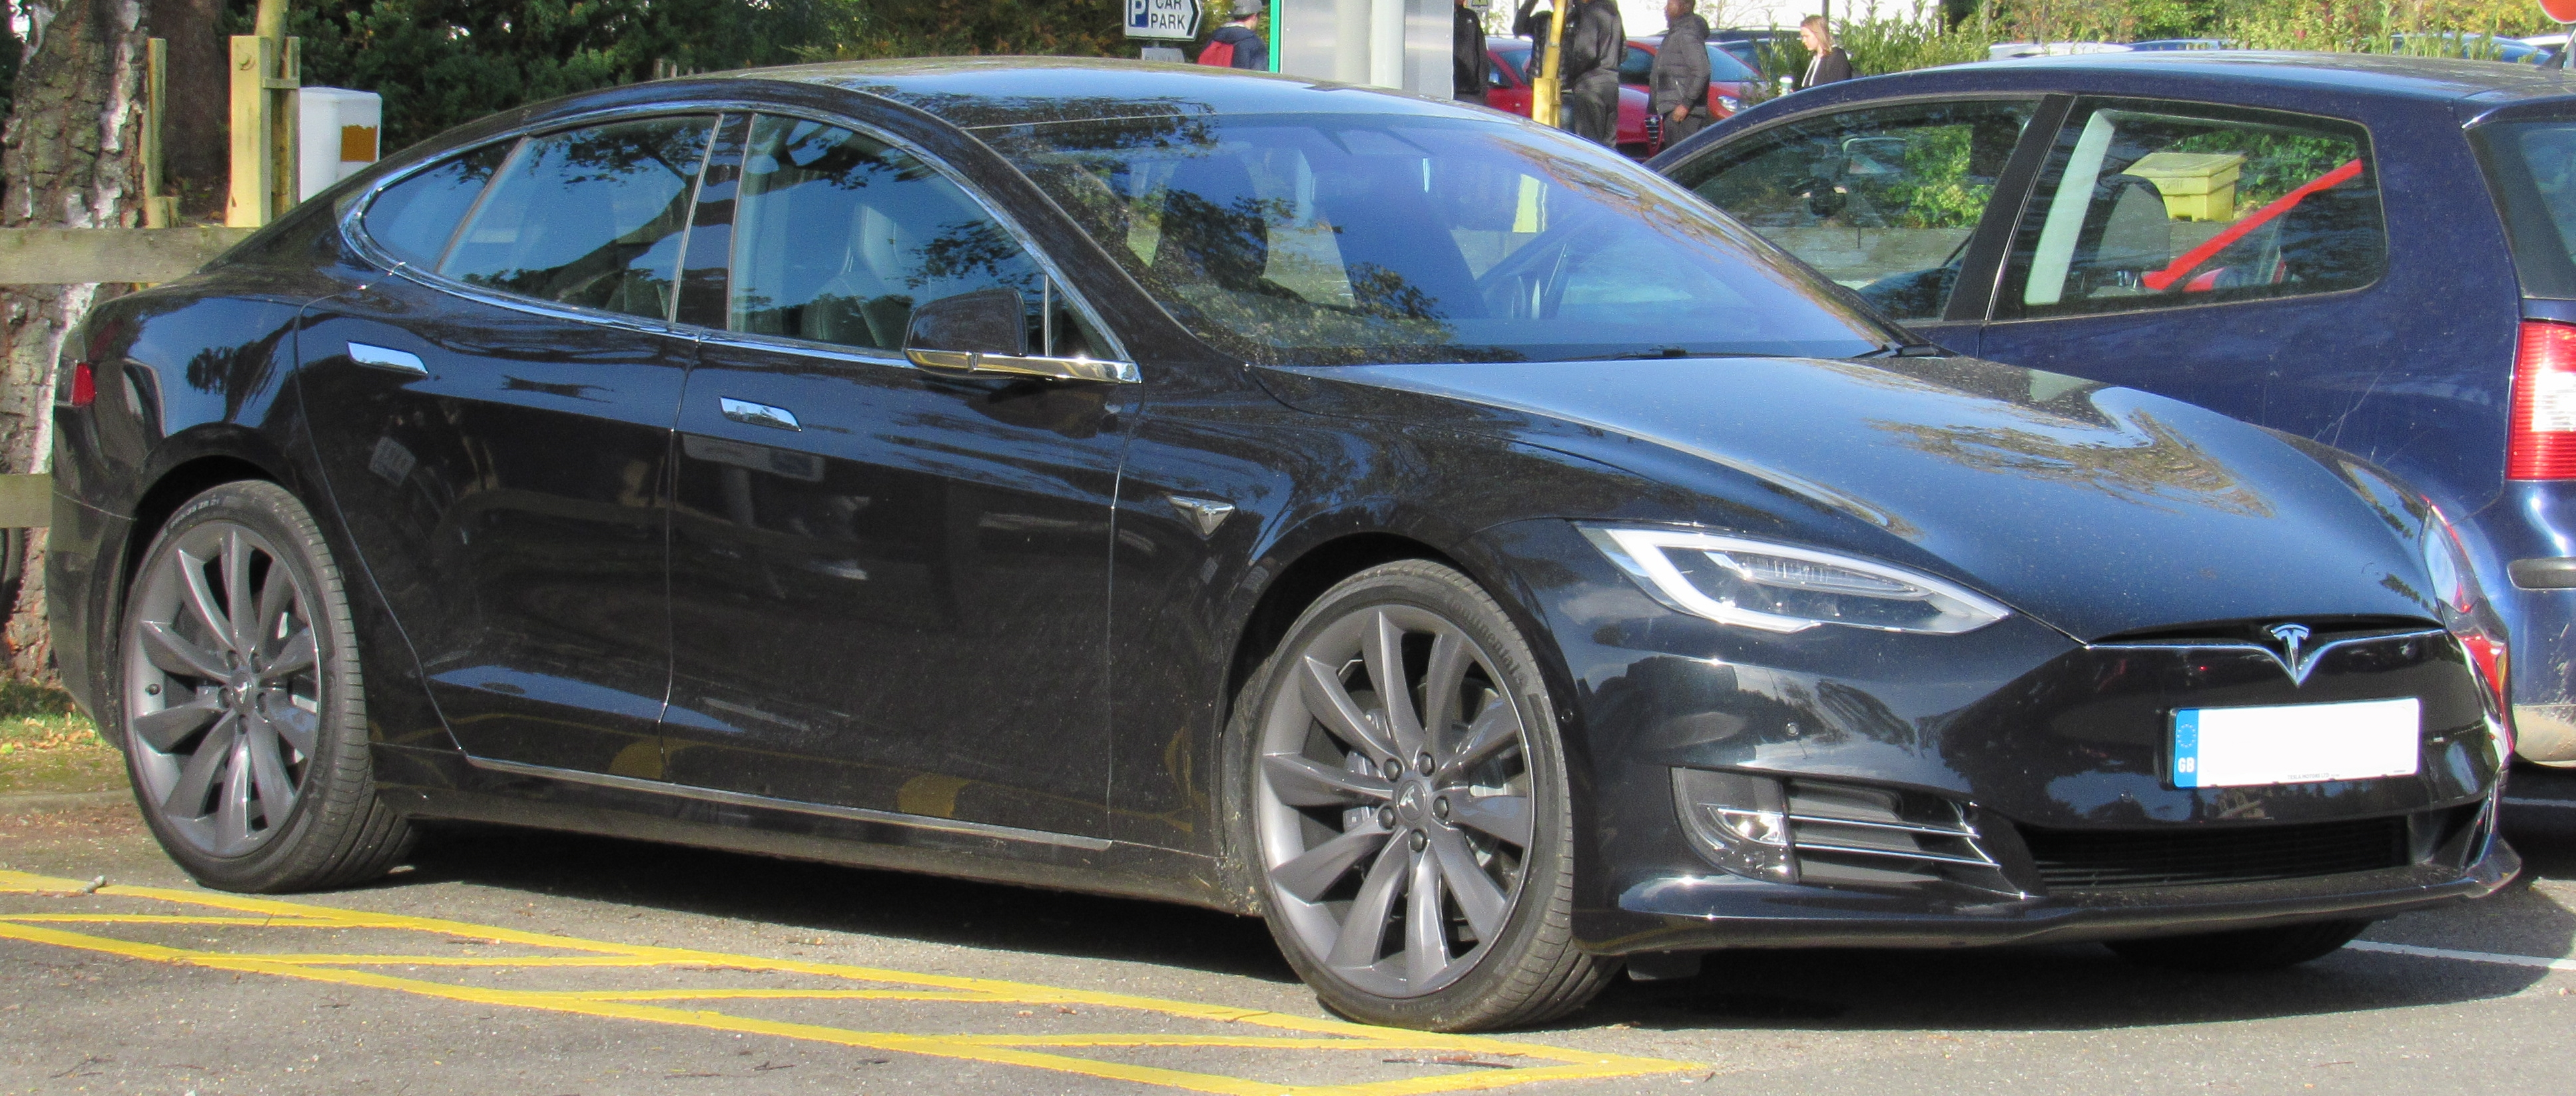 Tesla Model S 75d >> File 2017 Tesla Model S 75d Jpg Wikimedia Commons